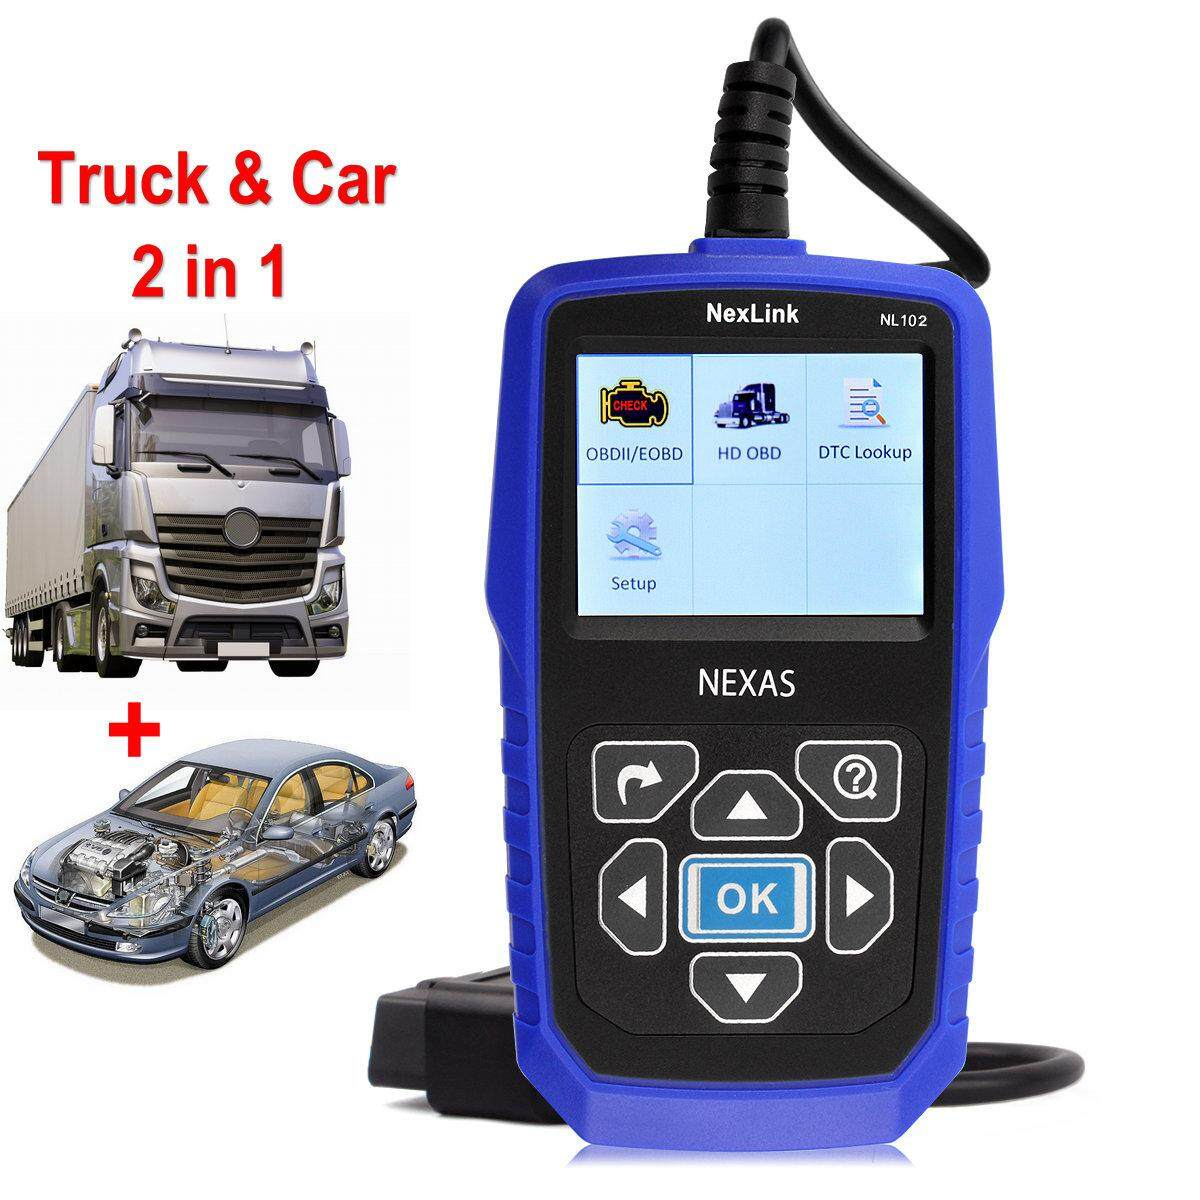 Heavy Duty Truck Diagnostic Scanner NEXAS NL102 OBD2 Scanner J1939 Protocol  For Volvo Hino Scania Renault Truck Diesel Engine ABS Diagnostic Tool